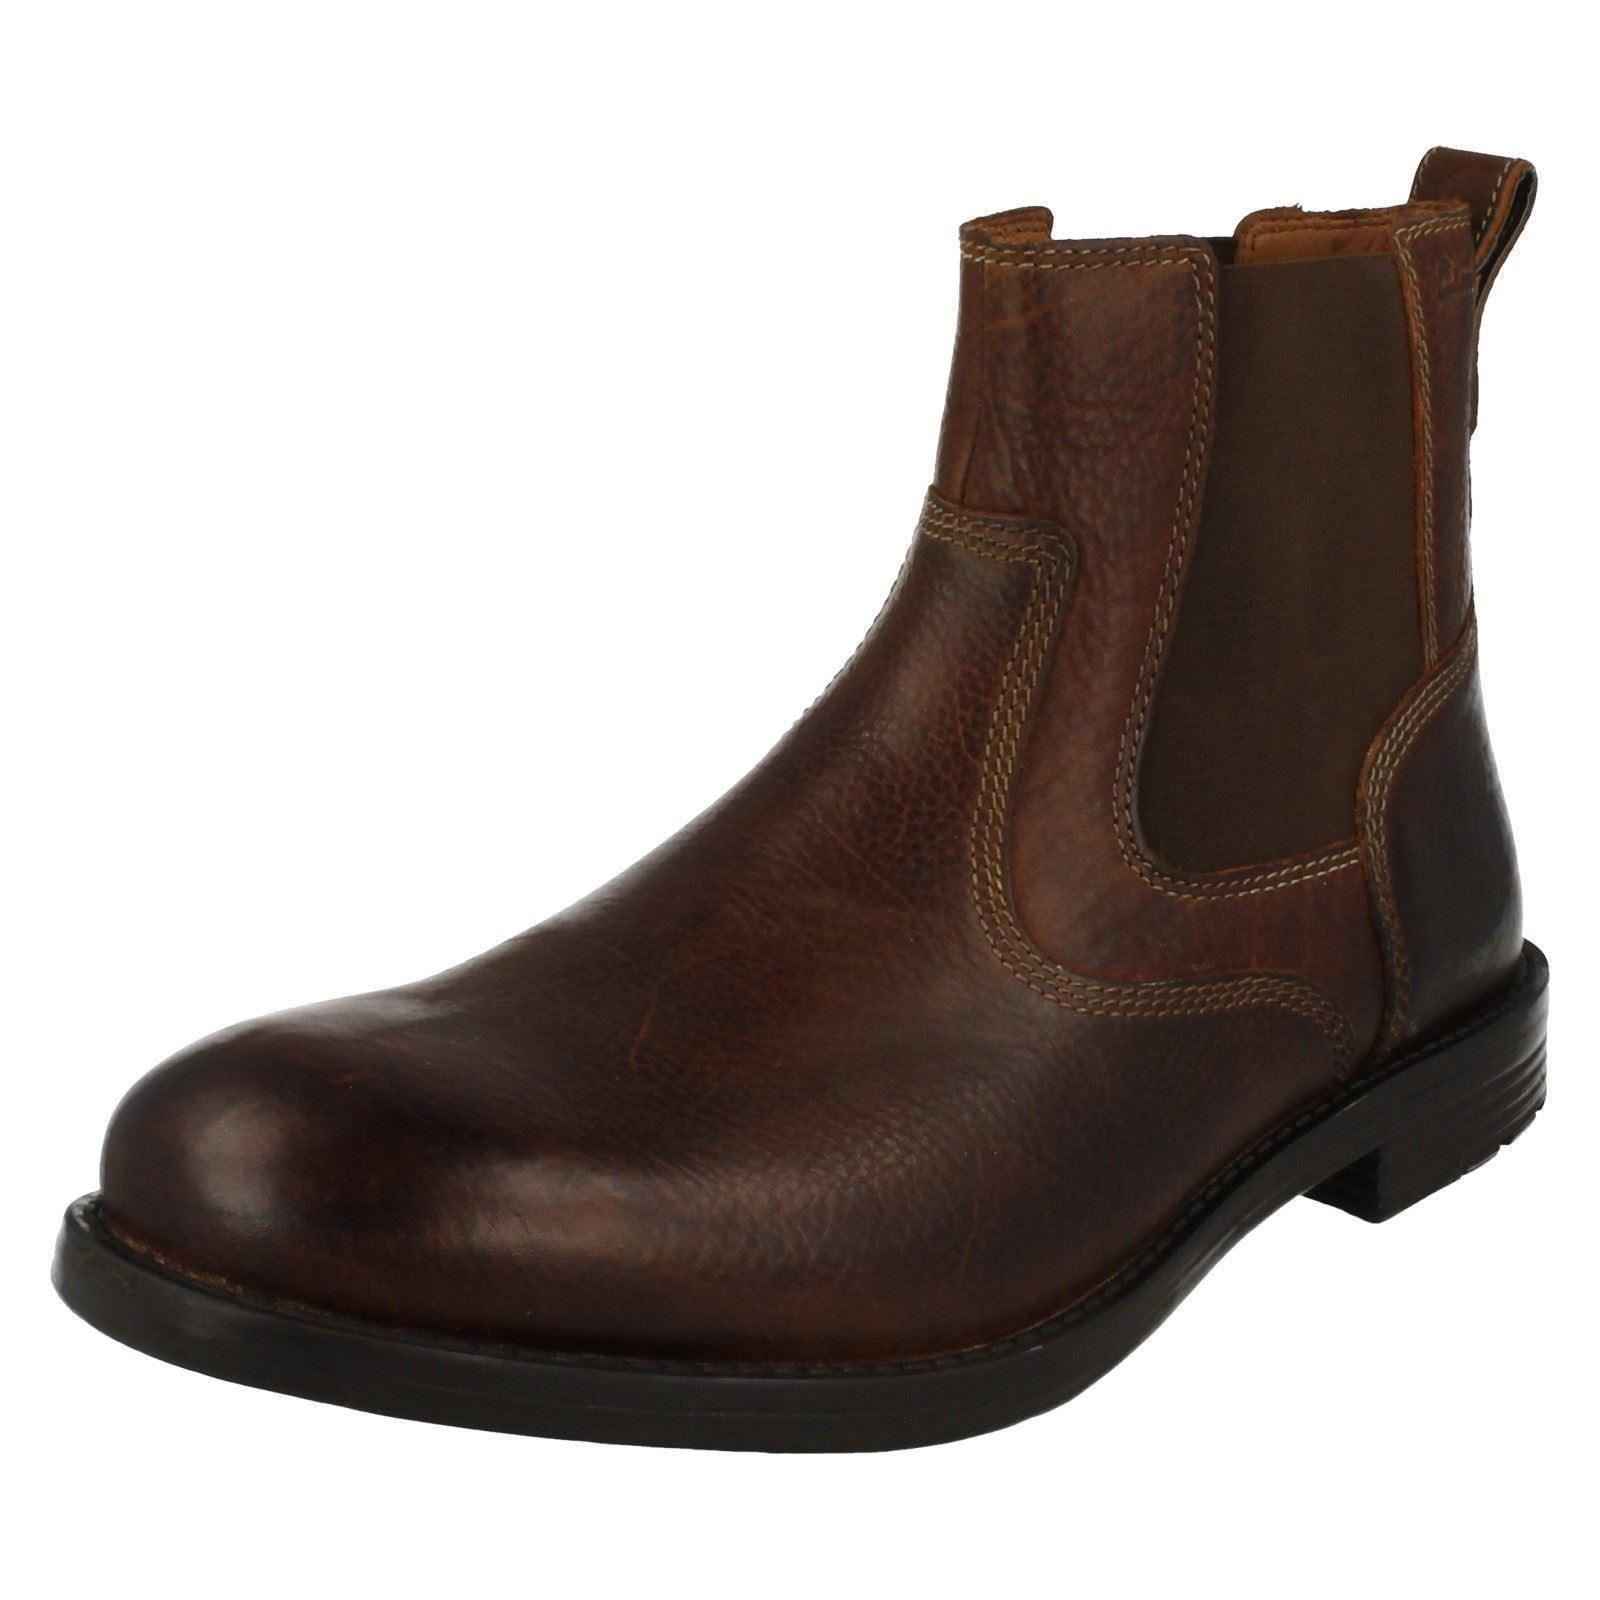 Men's Clarks Casual Pull On Boots The Style - Faulkner On